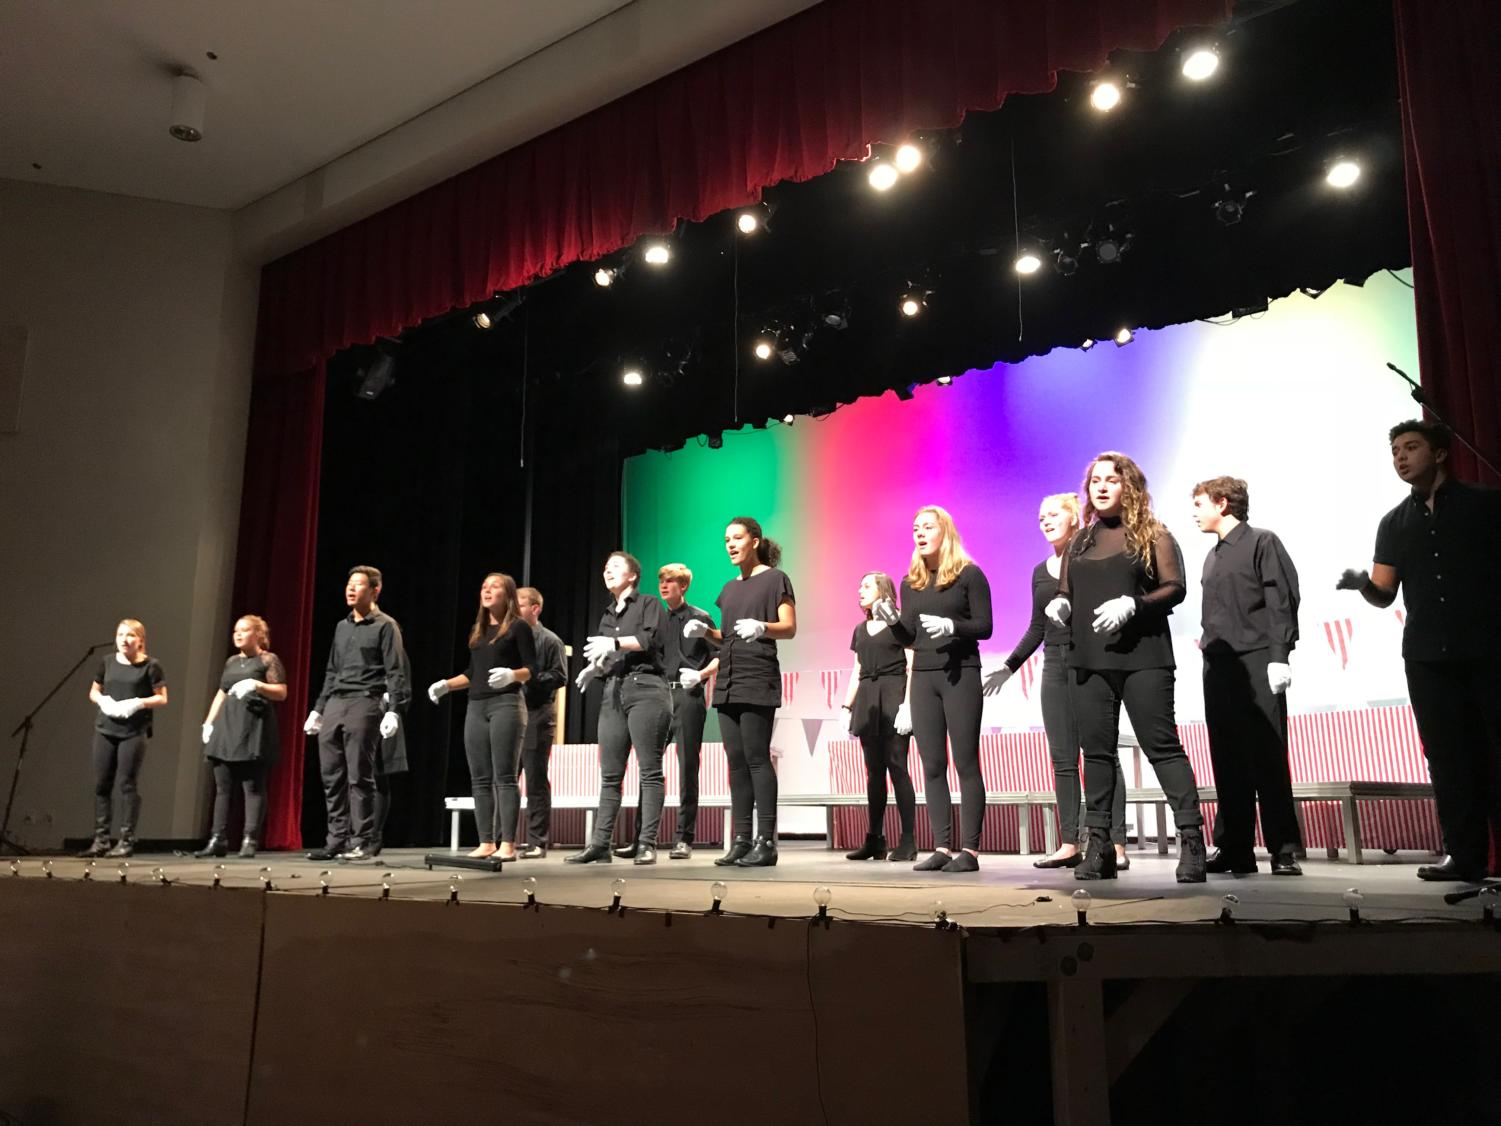 The MHS choir sings a set of songs related to their theme